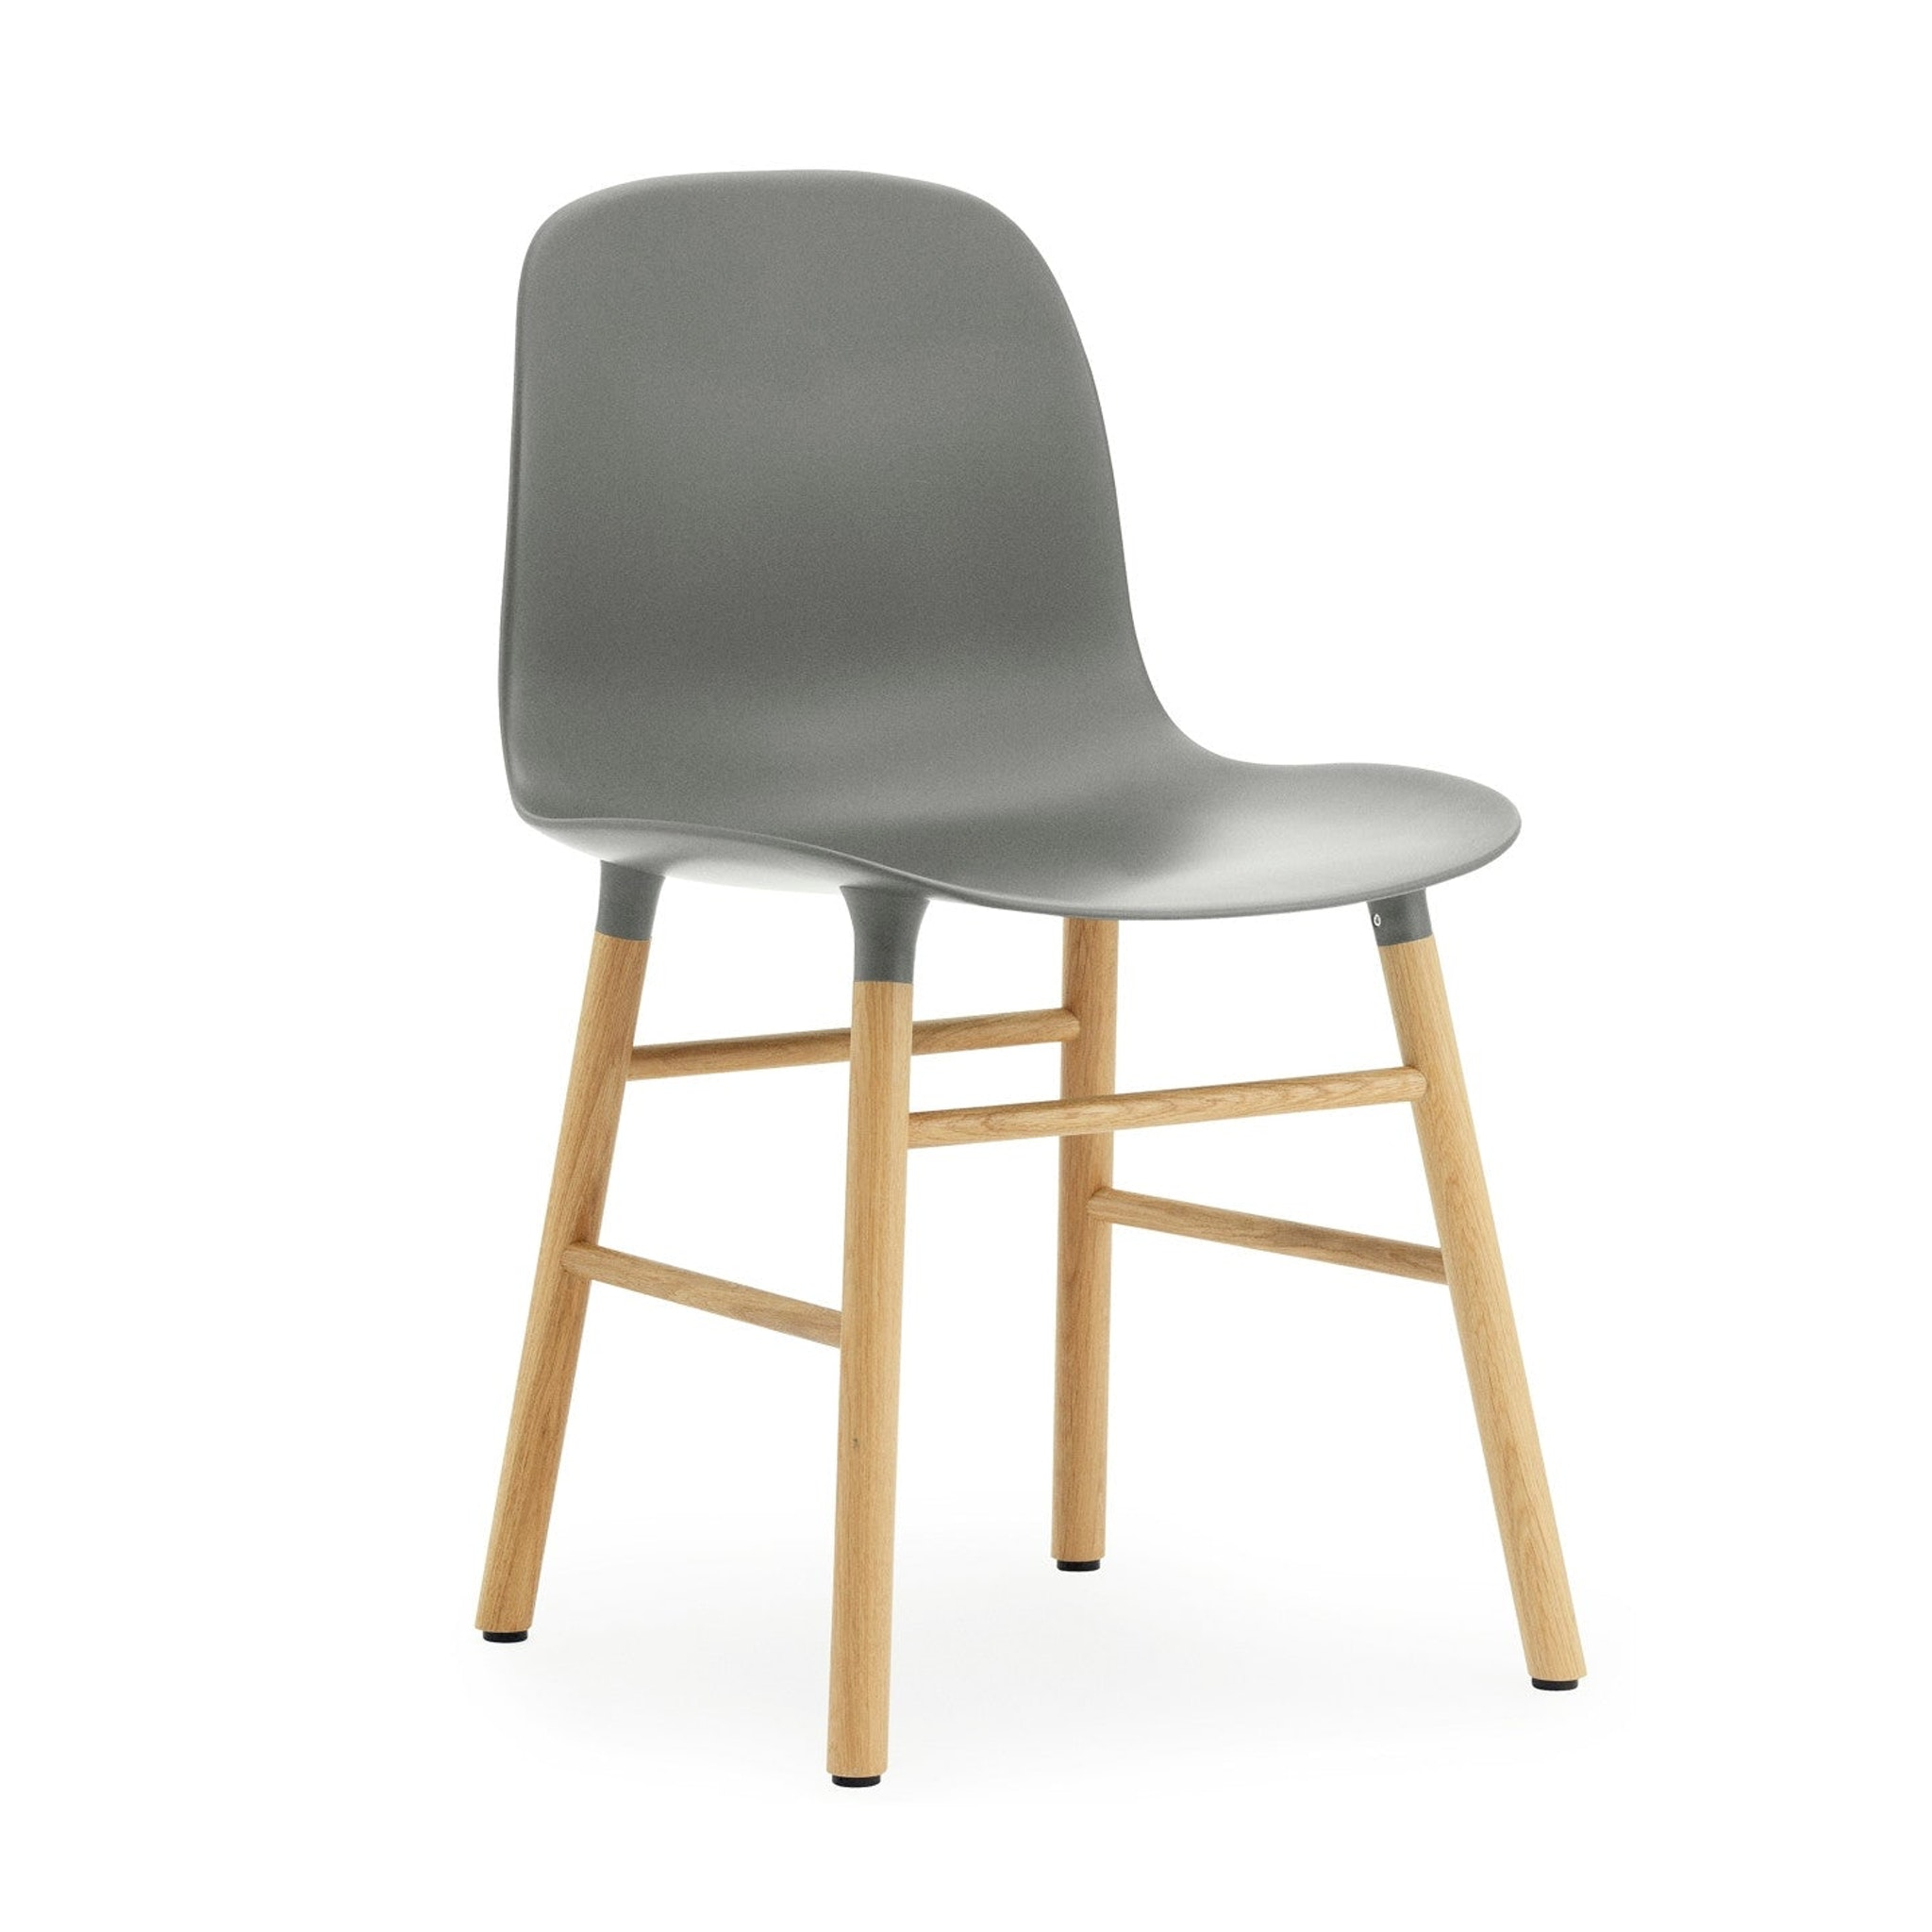 Form Chair with Wooden Base by Simon Legald